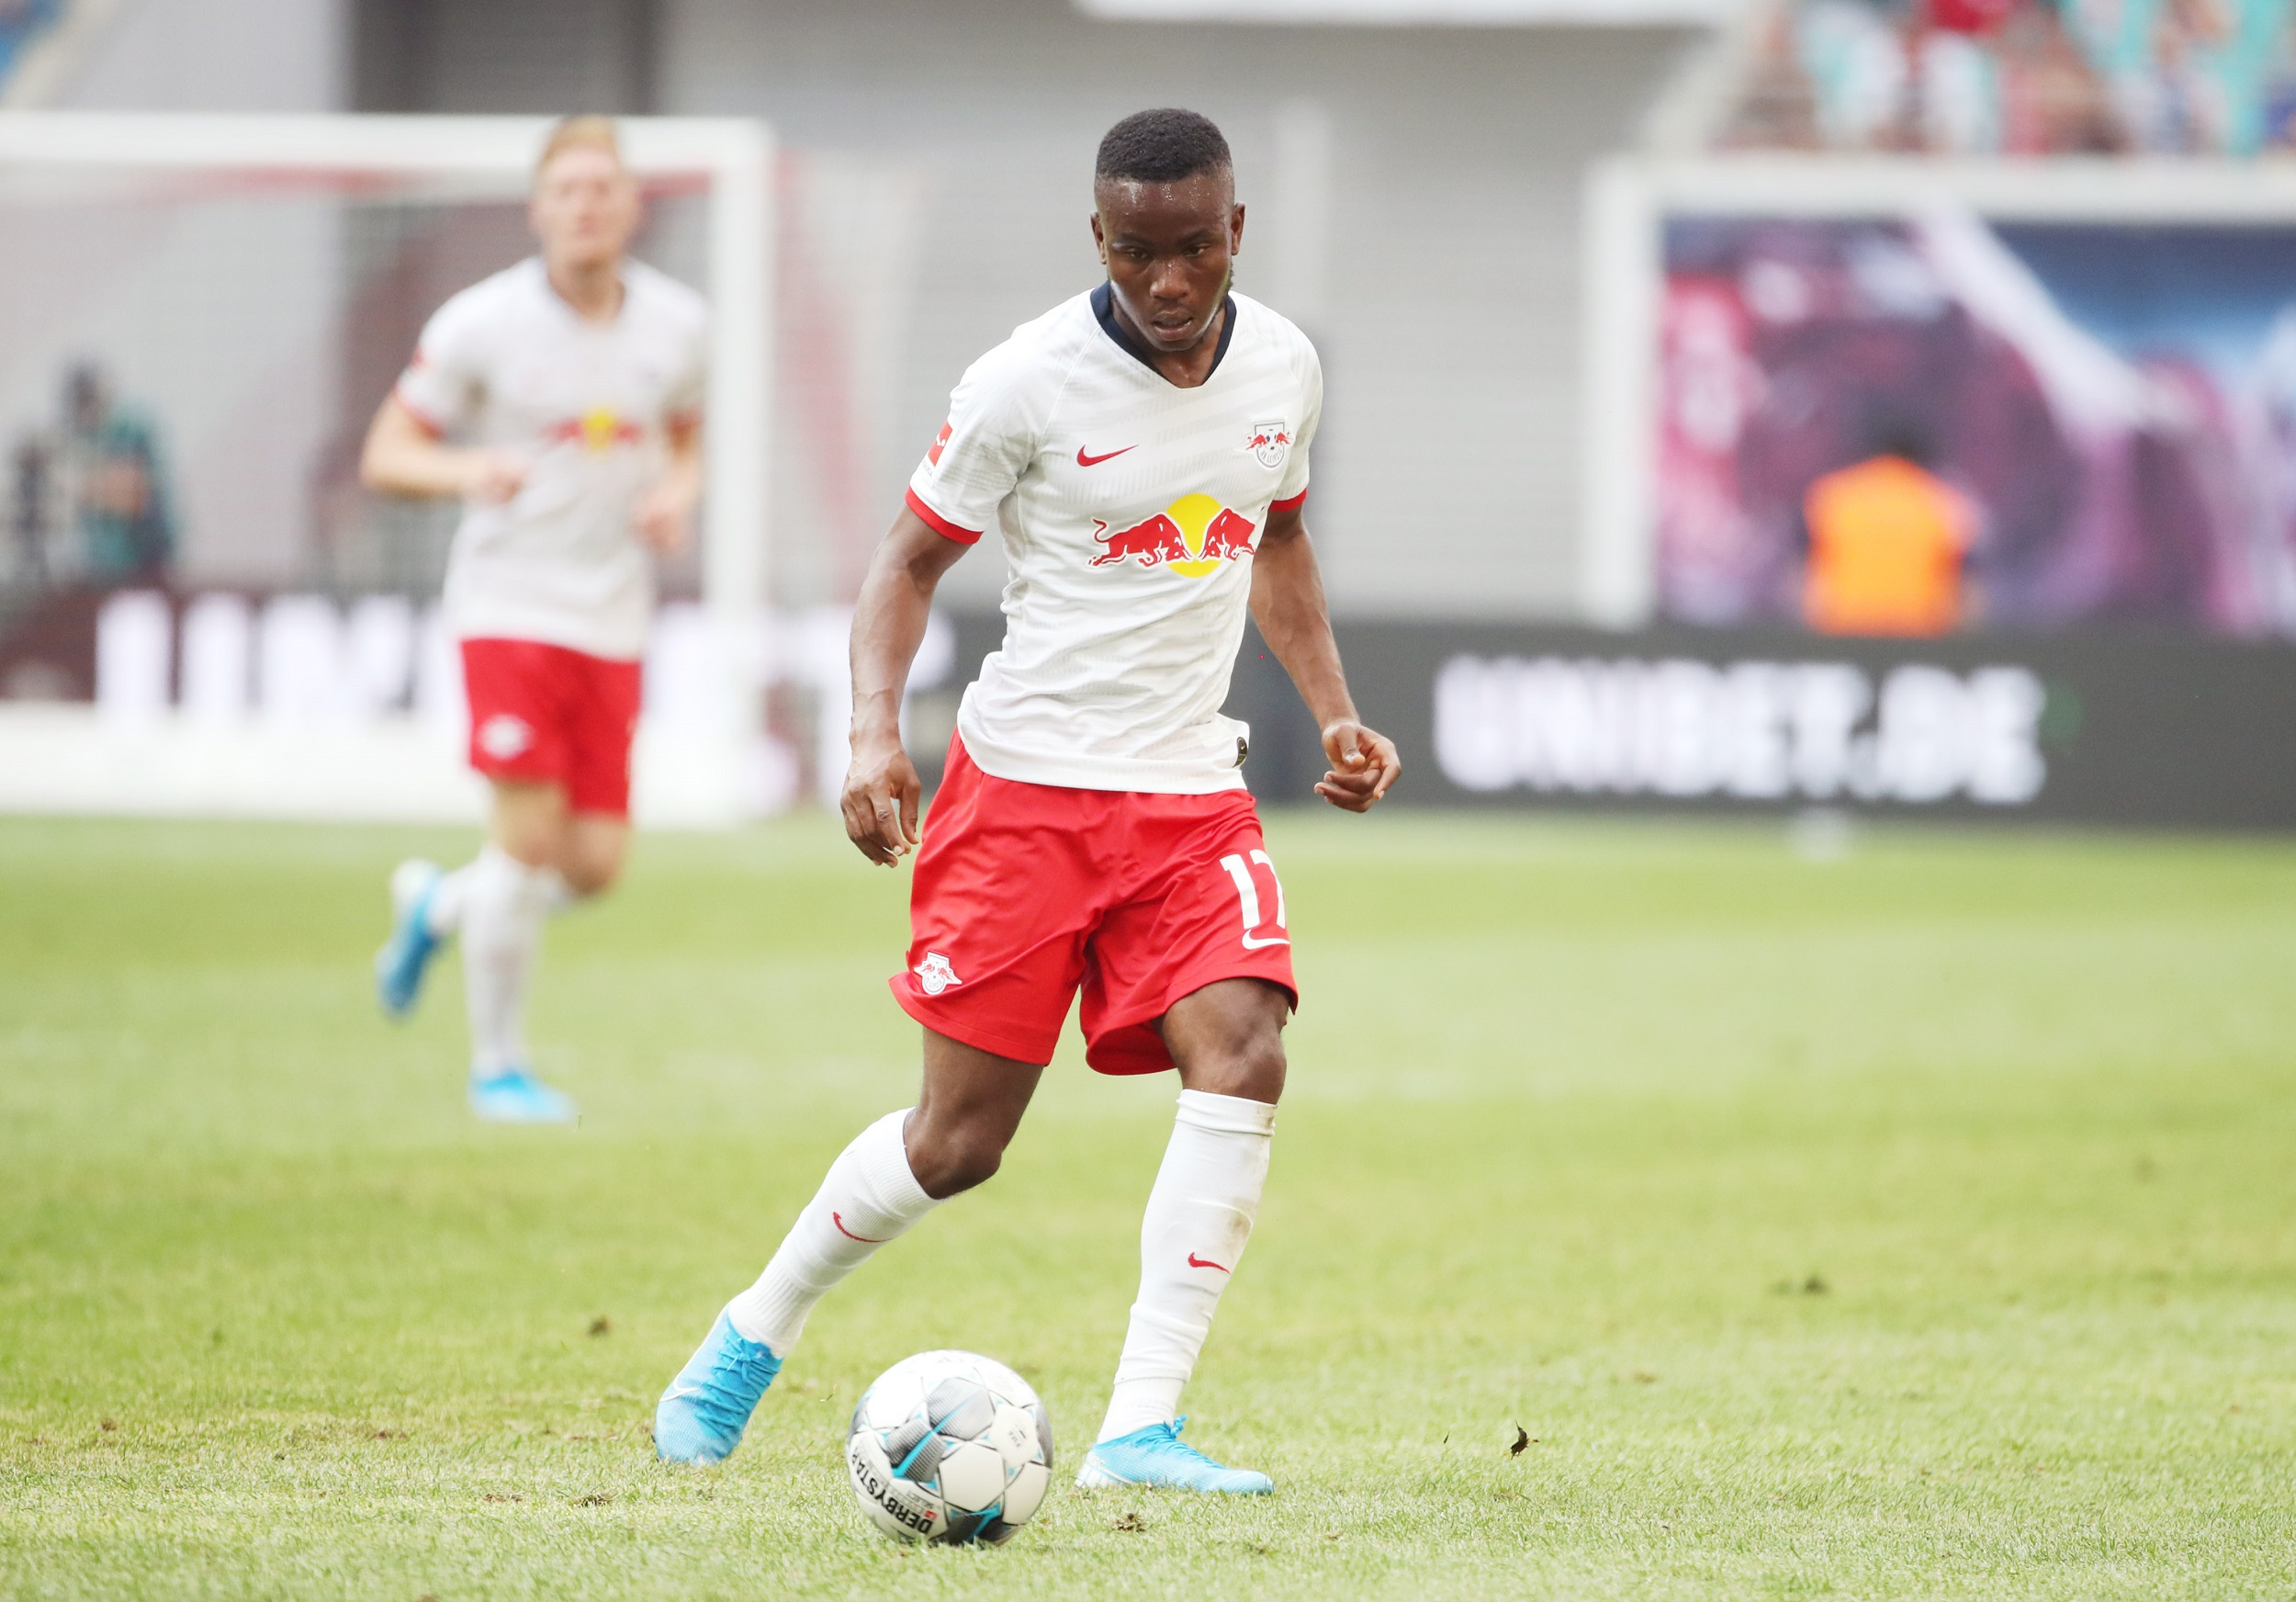 RB Leipzig boss: Ademola Lookman will be important for us